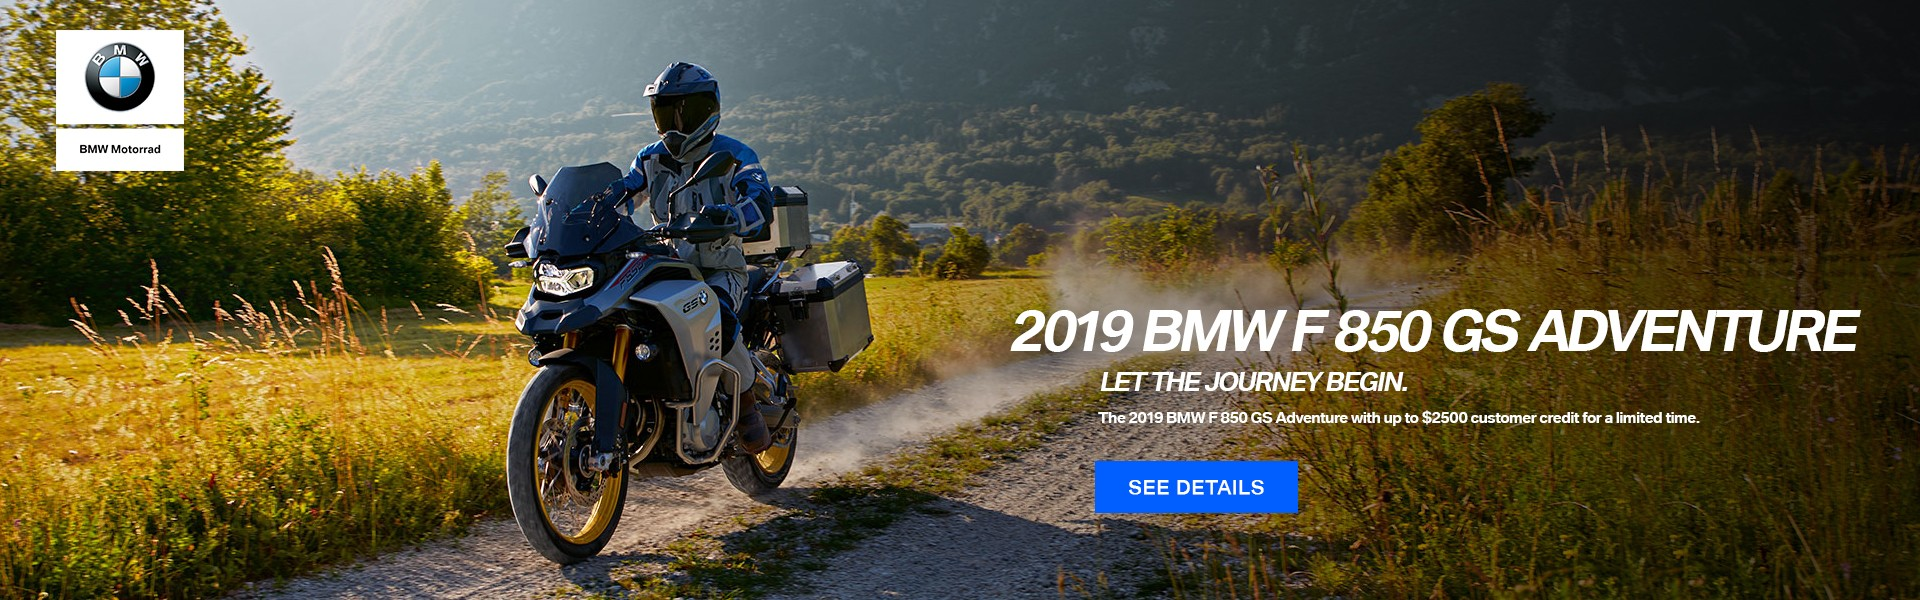 2019 BMW F 850 GS Adventure with up to $2500 customer credit for a limited time